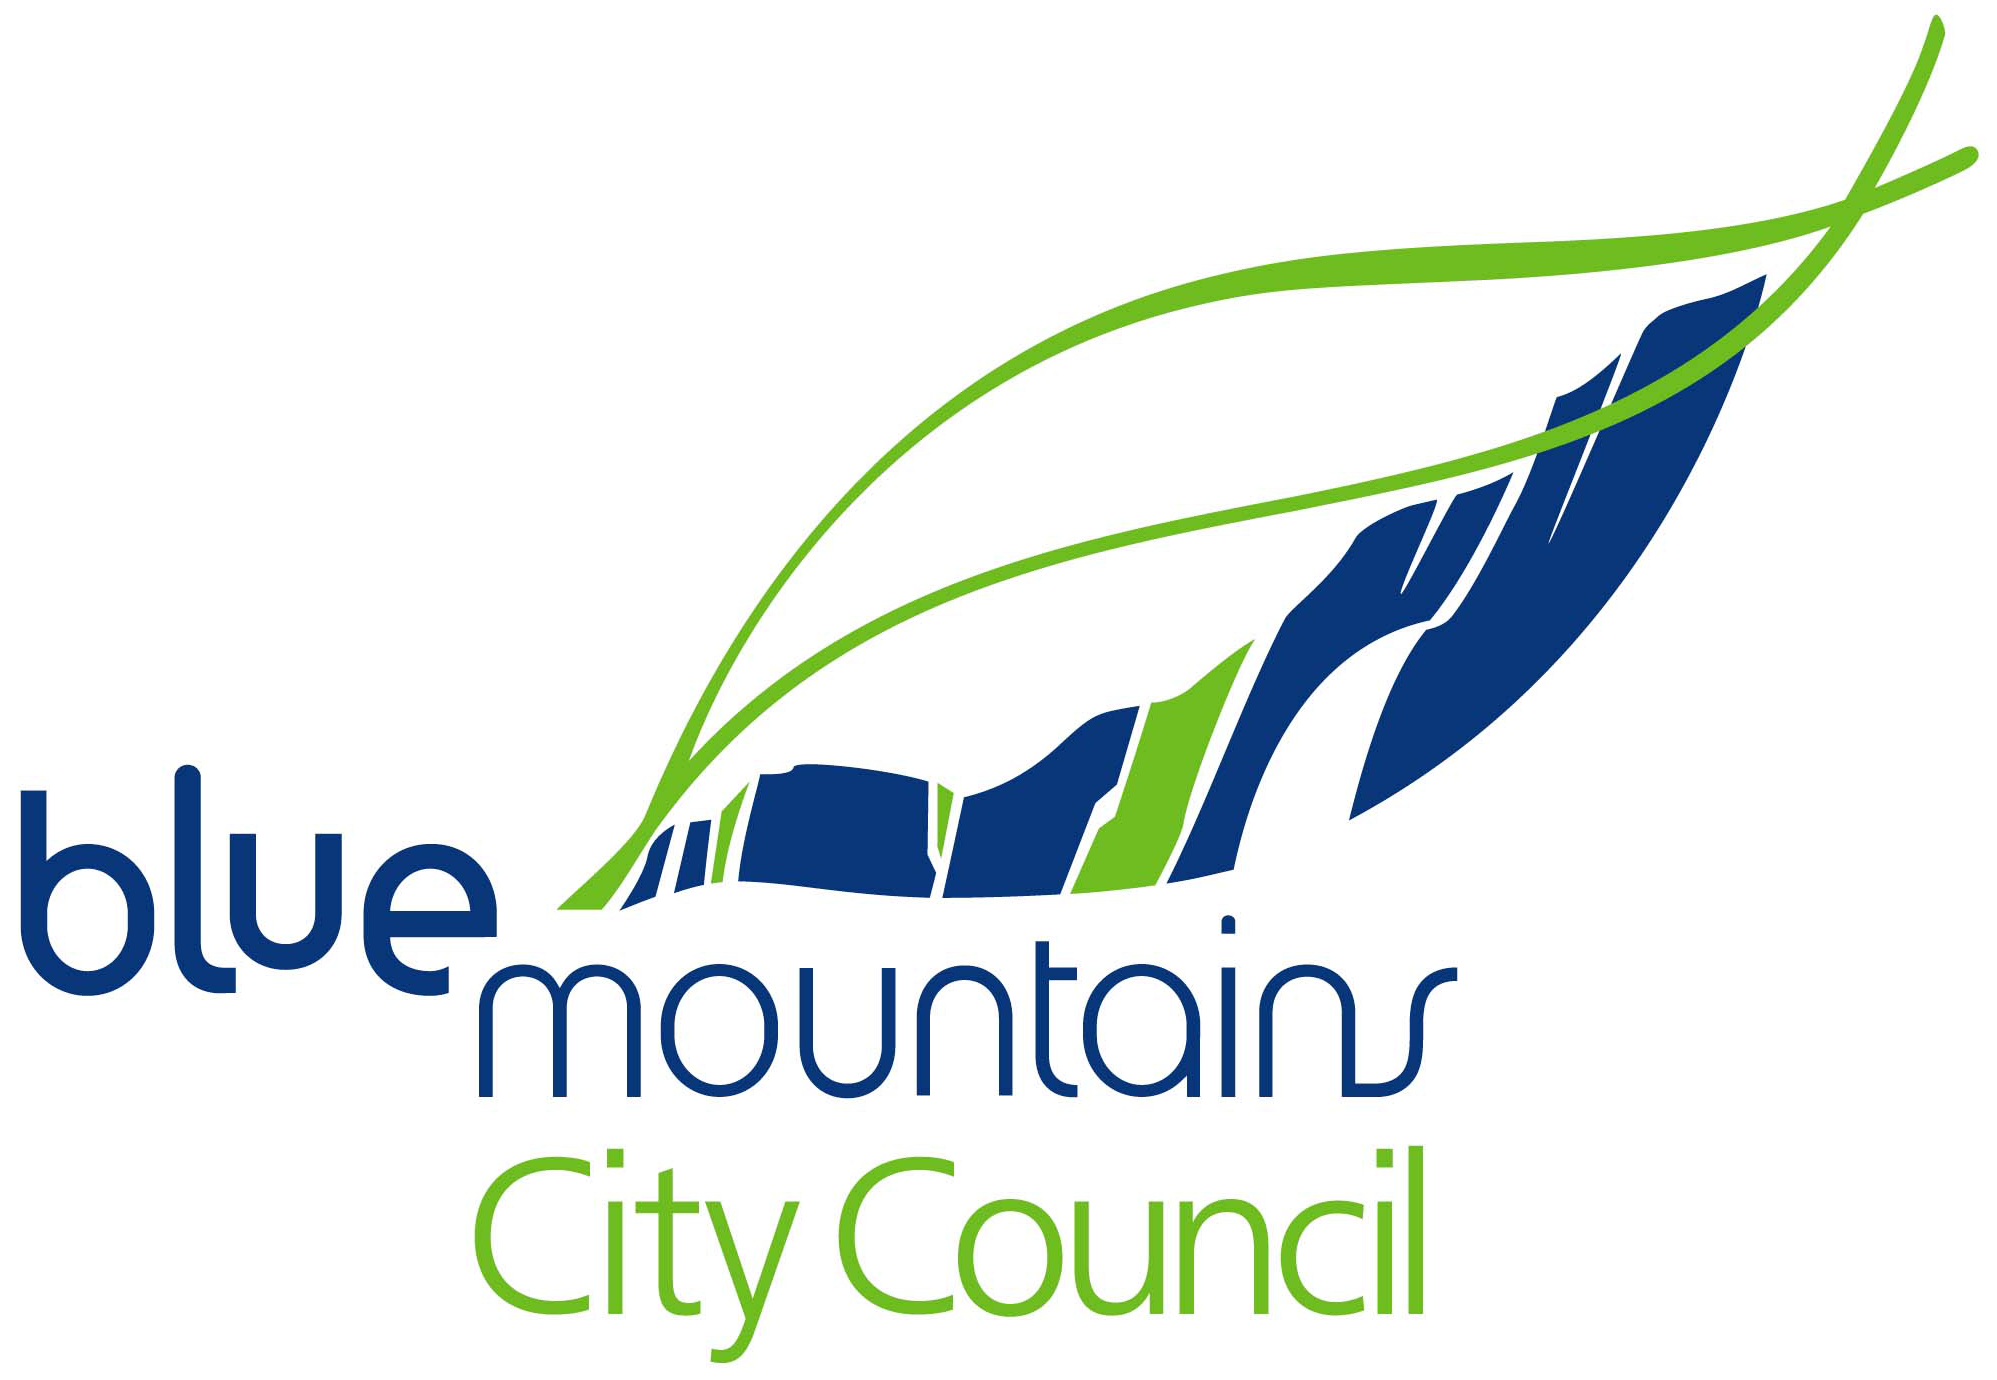 Blue Mountains City Council logo, with 'blue mountains' in dark blue and 'city council' in mid-green, underneath a line drawing of a simple leaf in the same colours, the bottom half of which has uneven blue and green vertical stripes to evoke the escarpments of the mountains